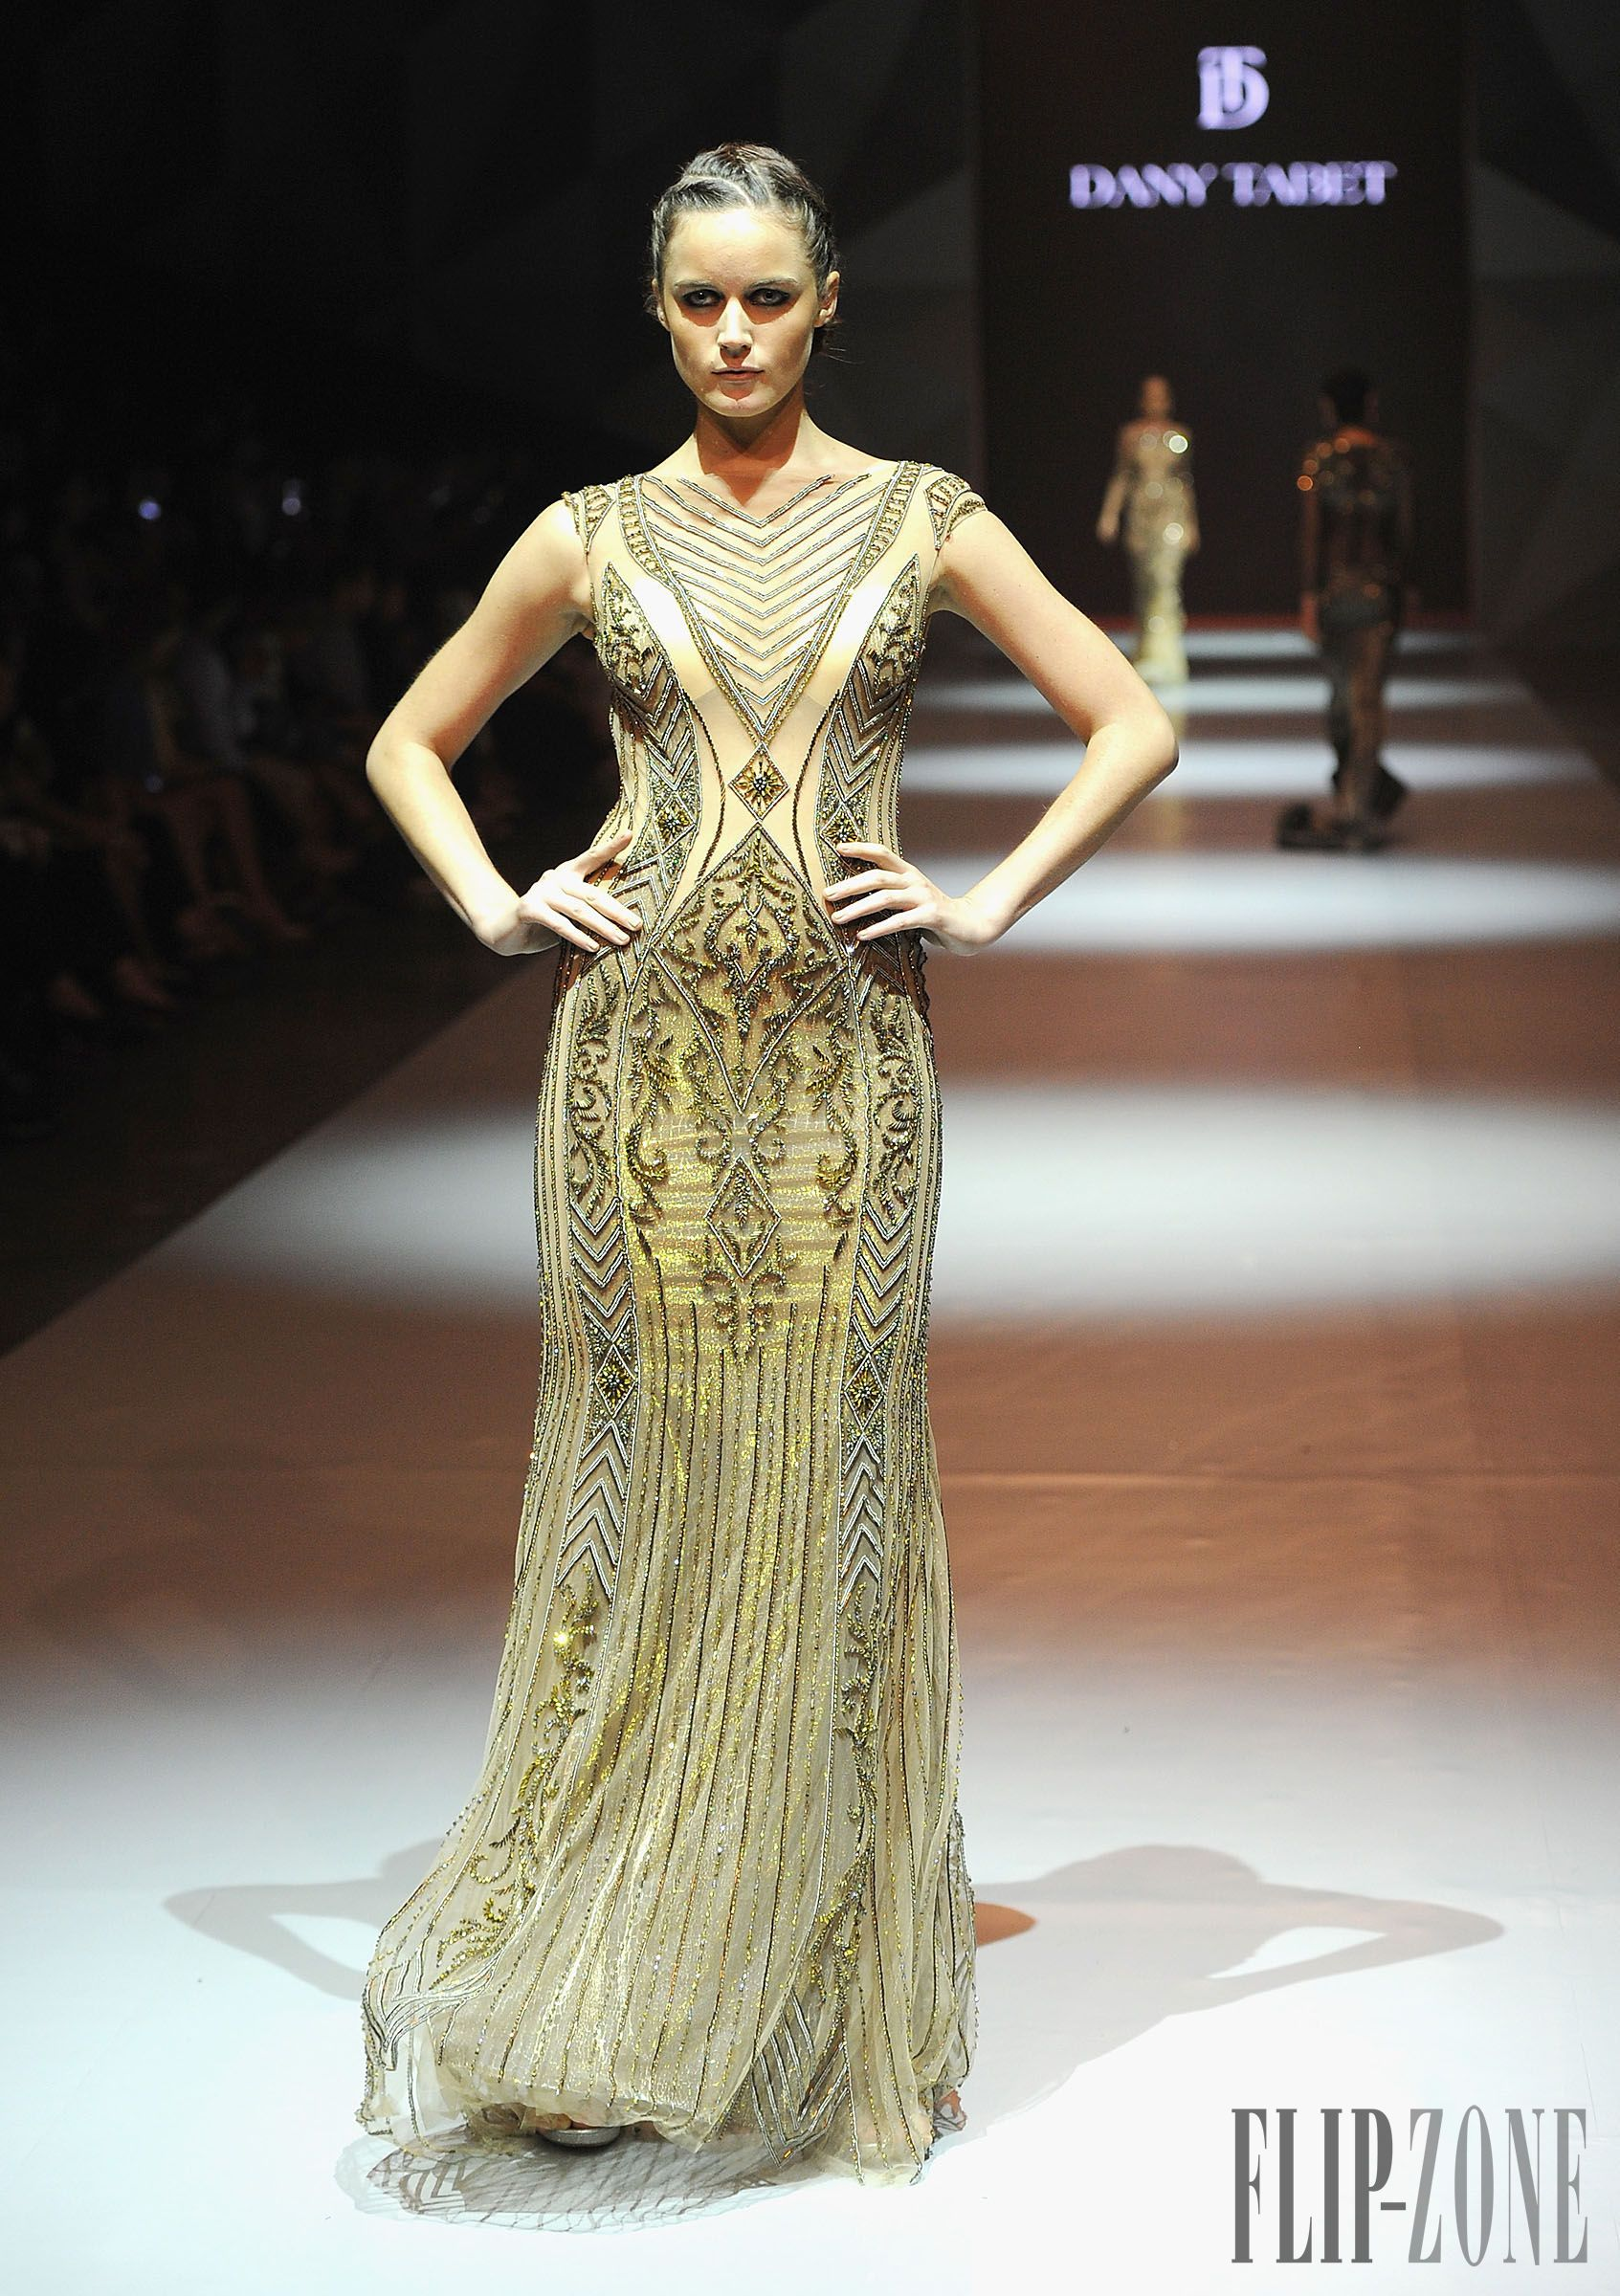 Dany Tabet Spring-summer 2015 - Ready-to-Wear - http://www.flip-zone.net/fashion/ready-to-wear/independant-designers/dany-tabet-5134